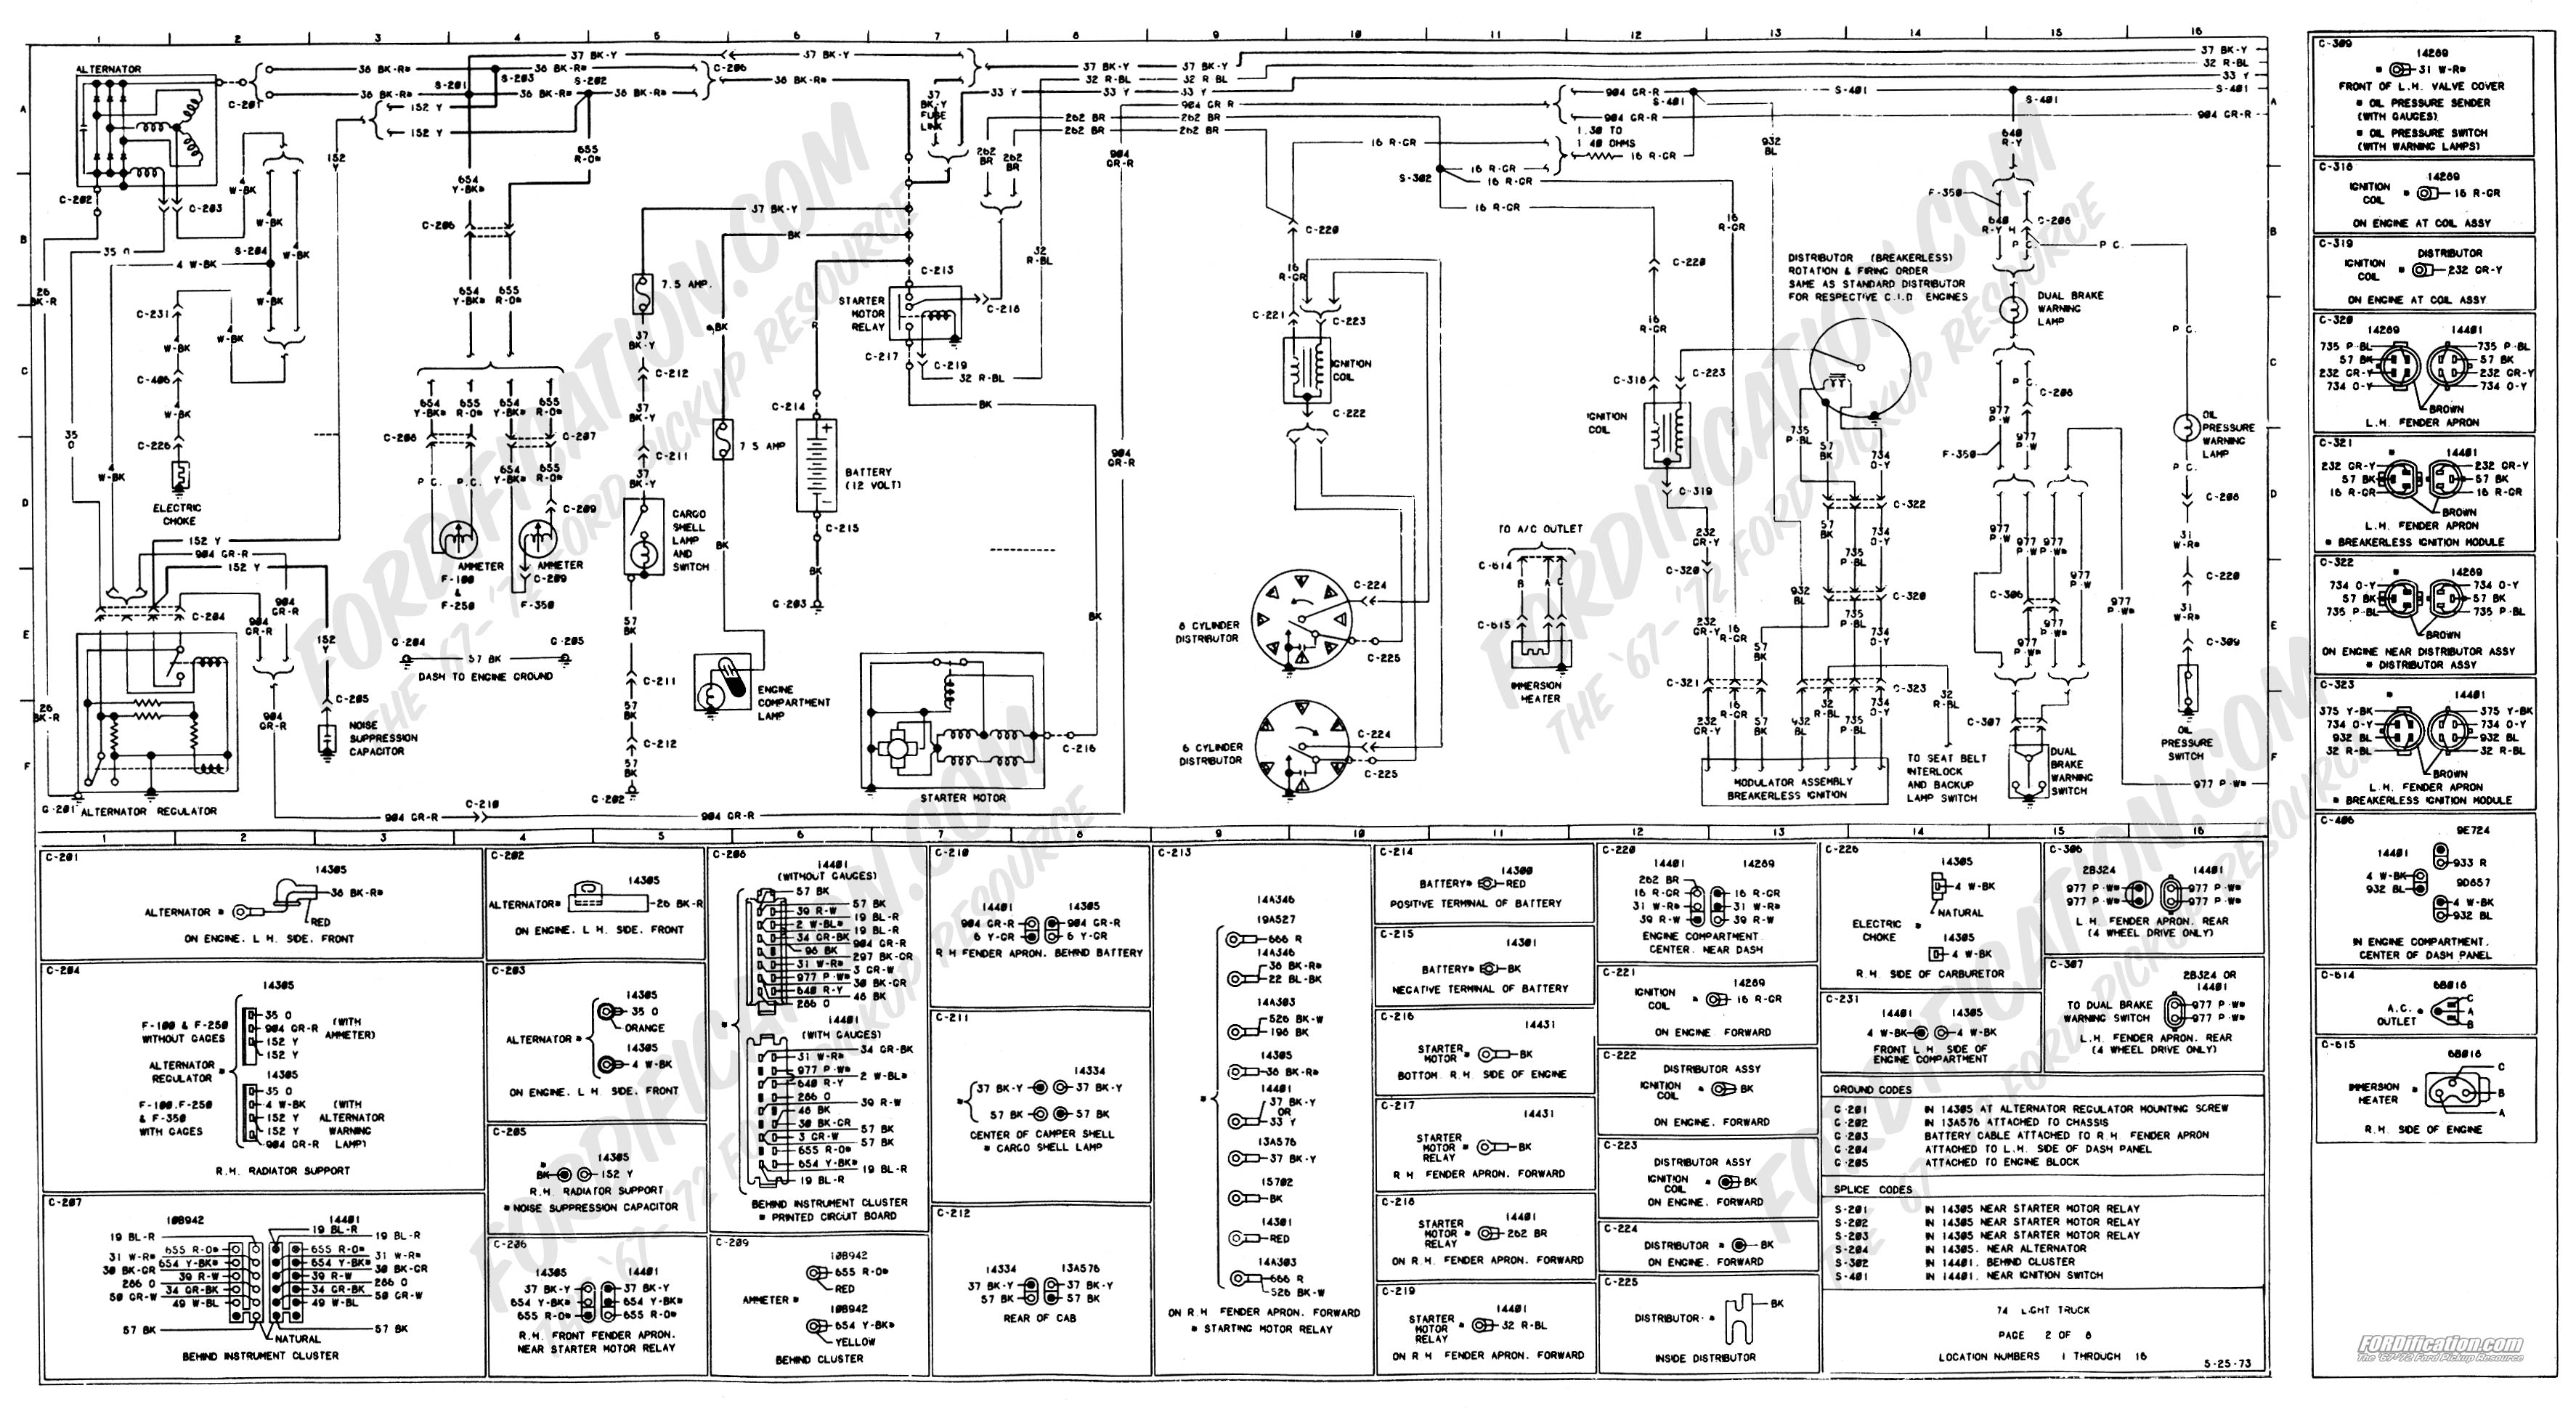 Pioneer Deh 6 Wiring Diagram Additionally Pioneer Super Tuner 3 Wiring